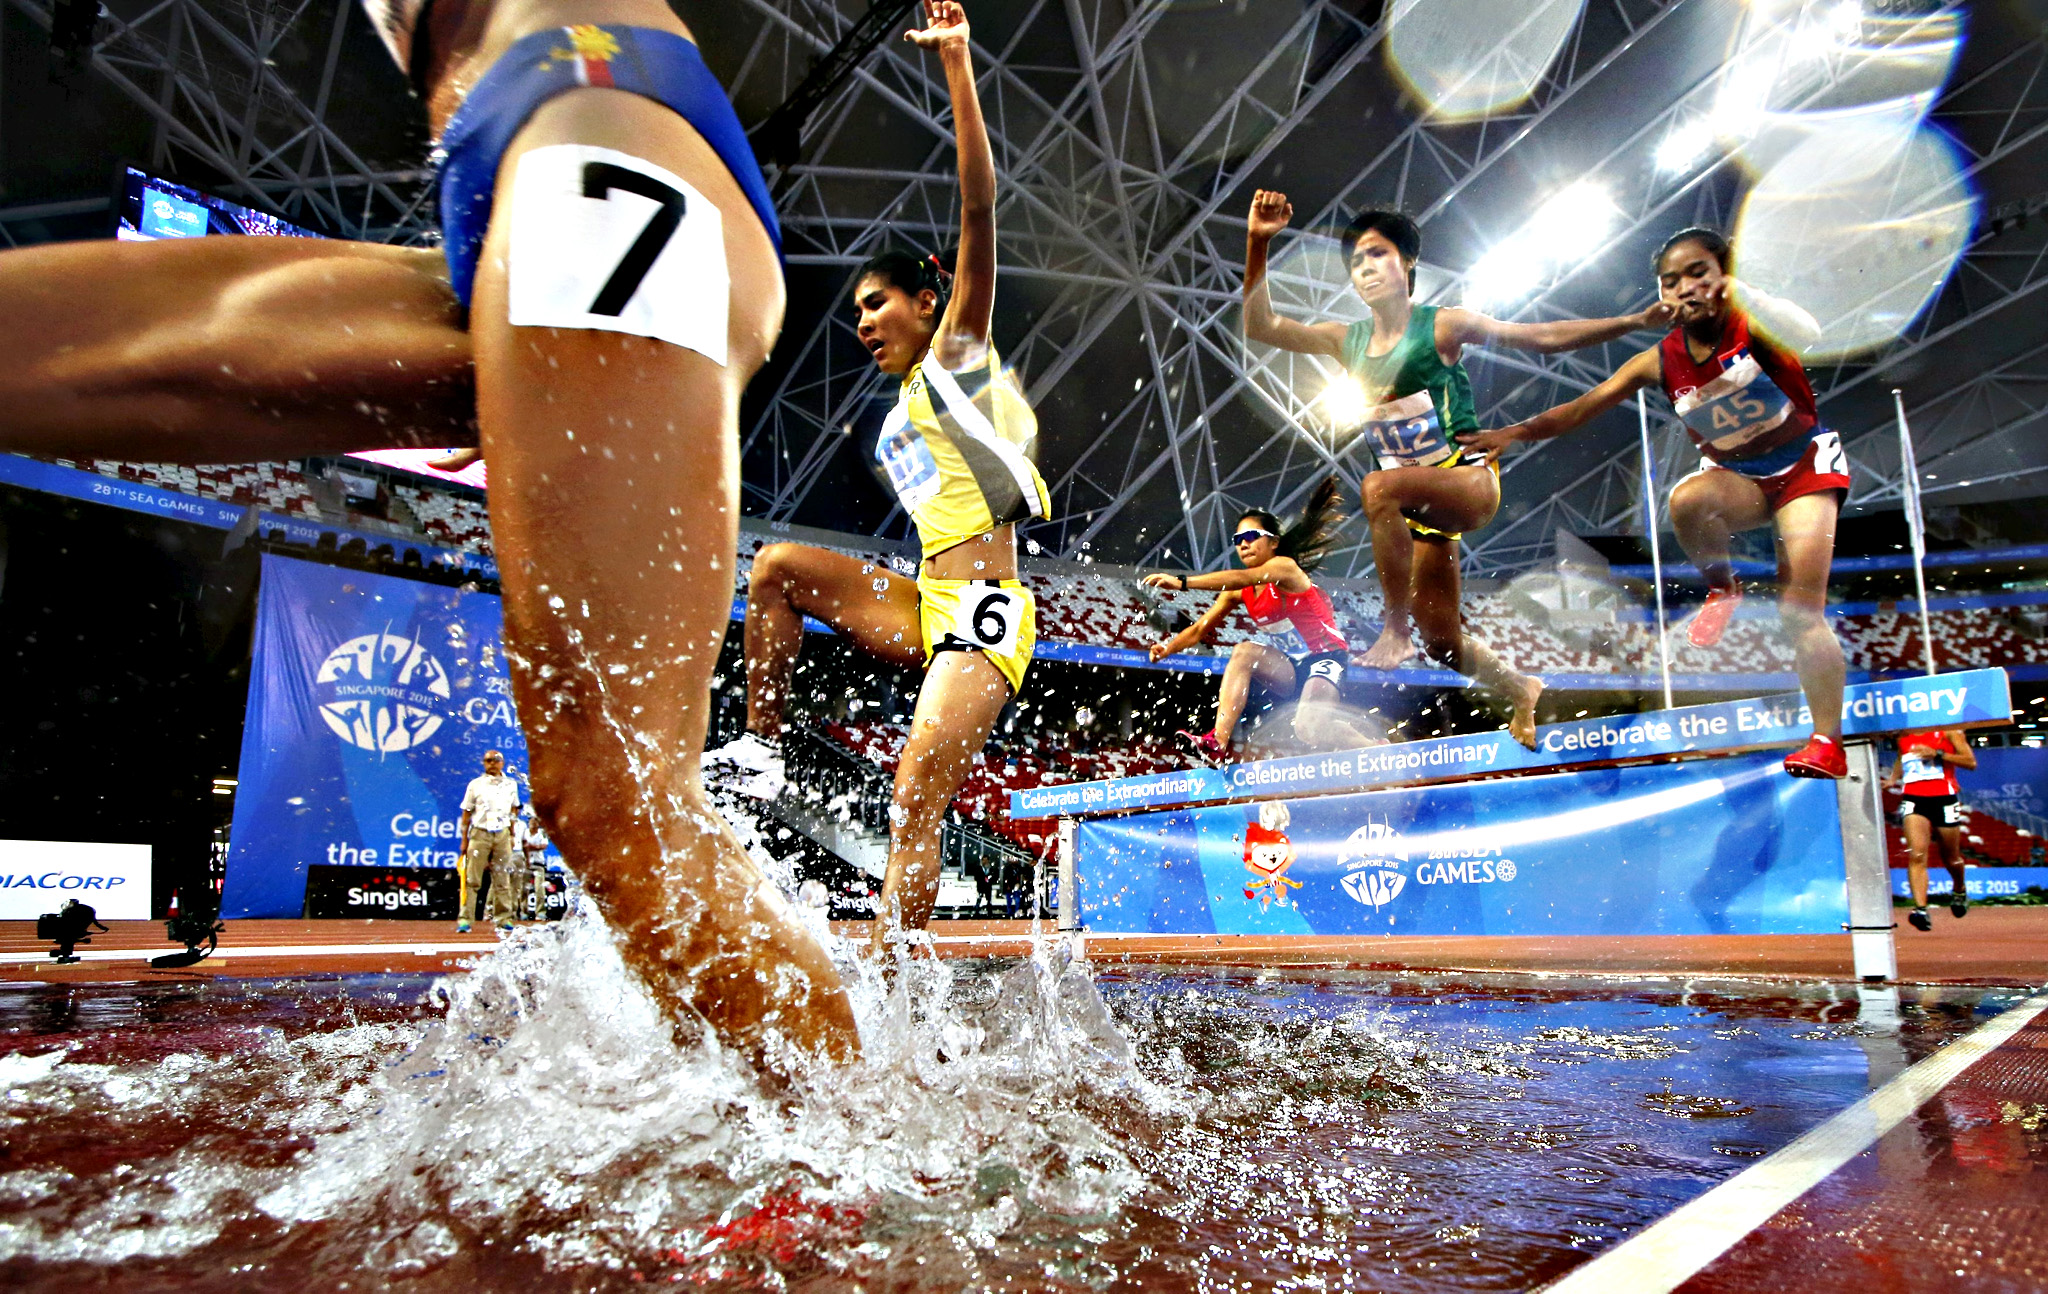 Contestants jump into the water pit during the women's 3000m steeplechase finals at the Southeast Asian (SEA) Games in Singapore June 12, 2015.